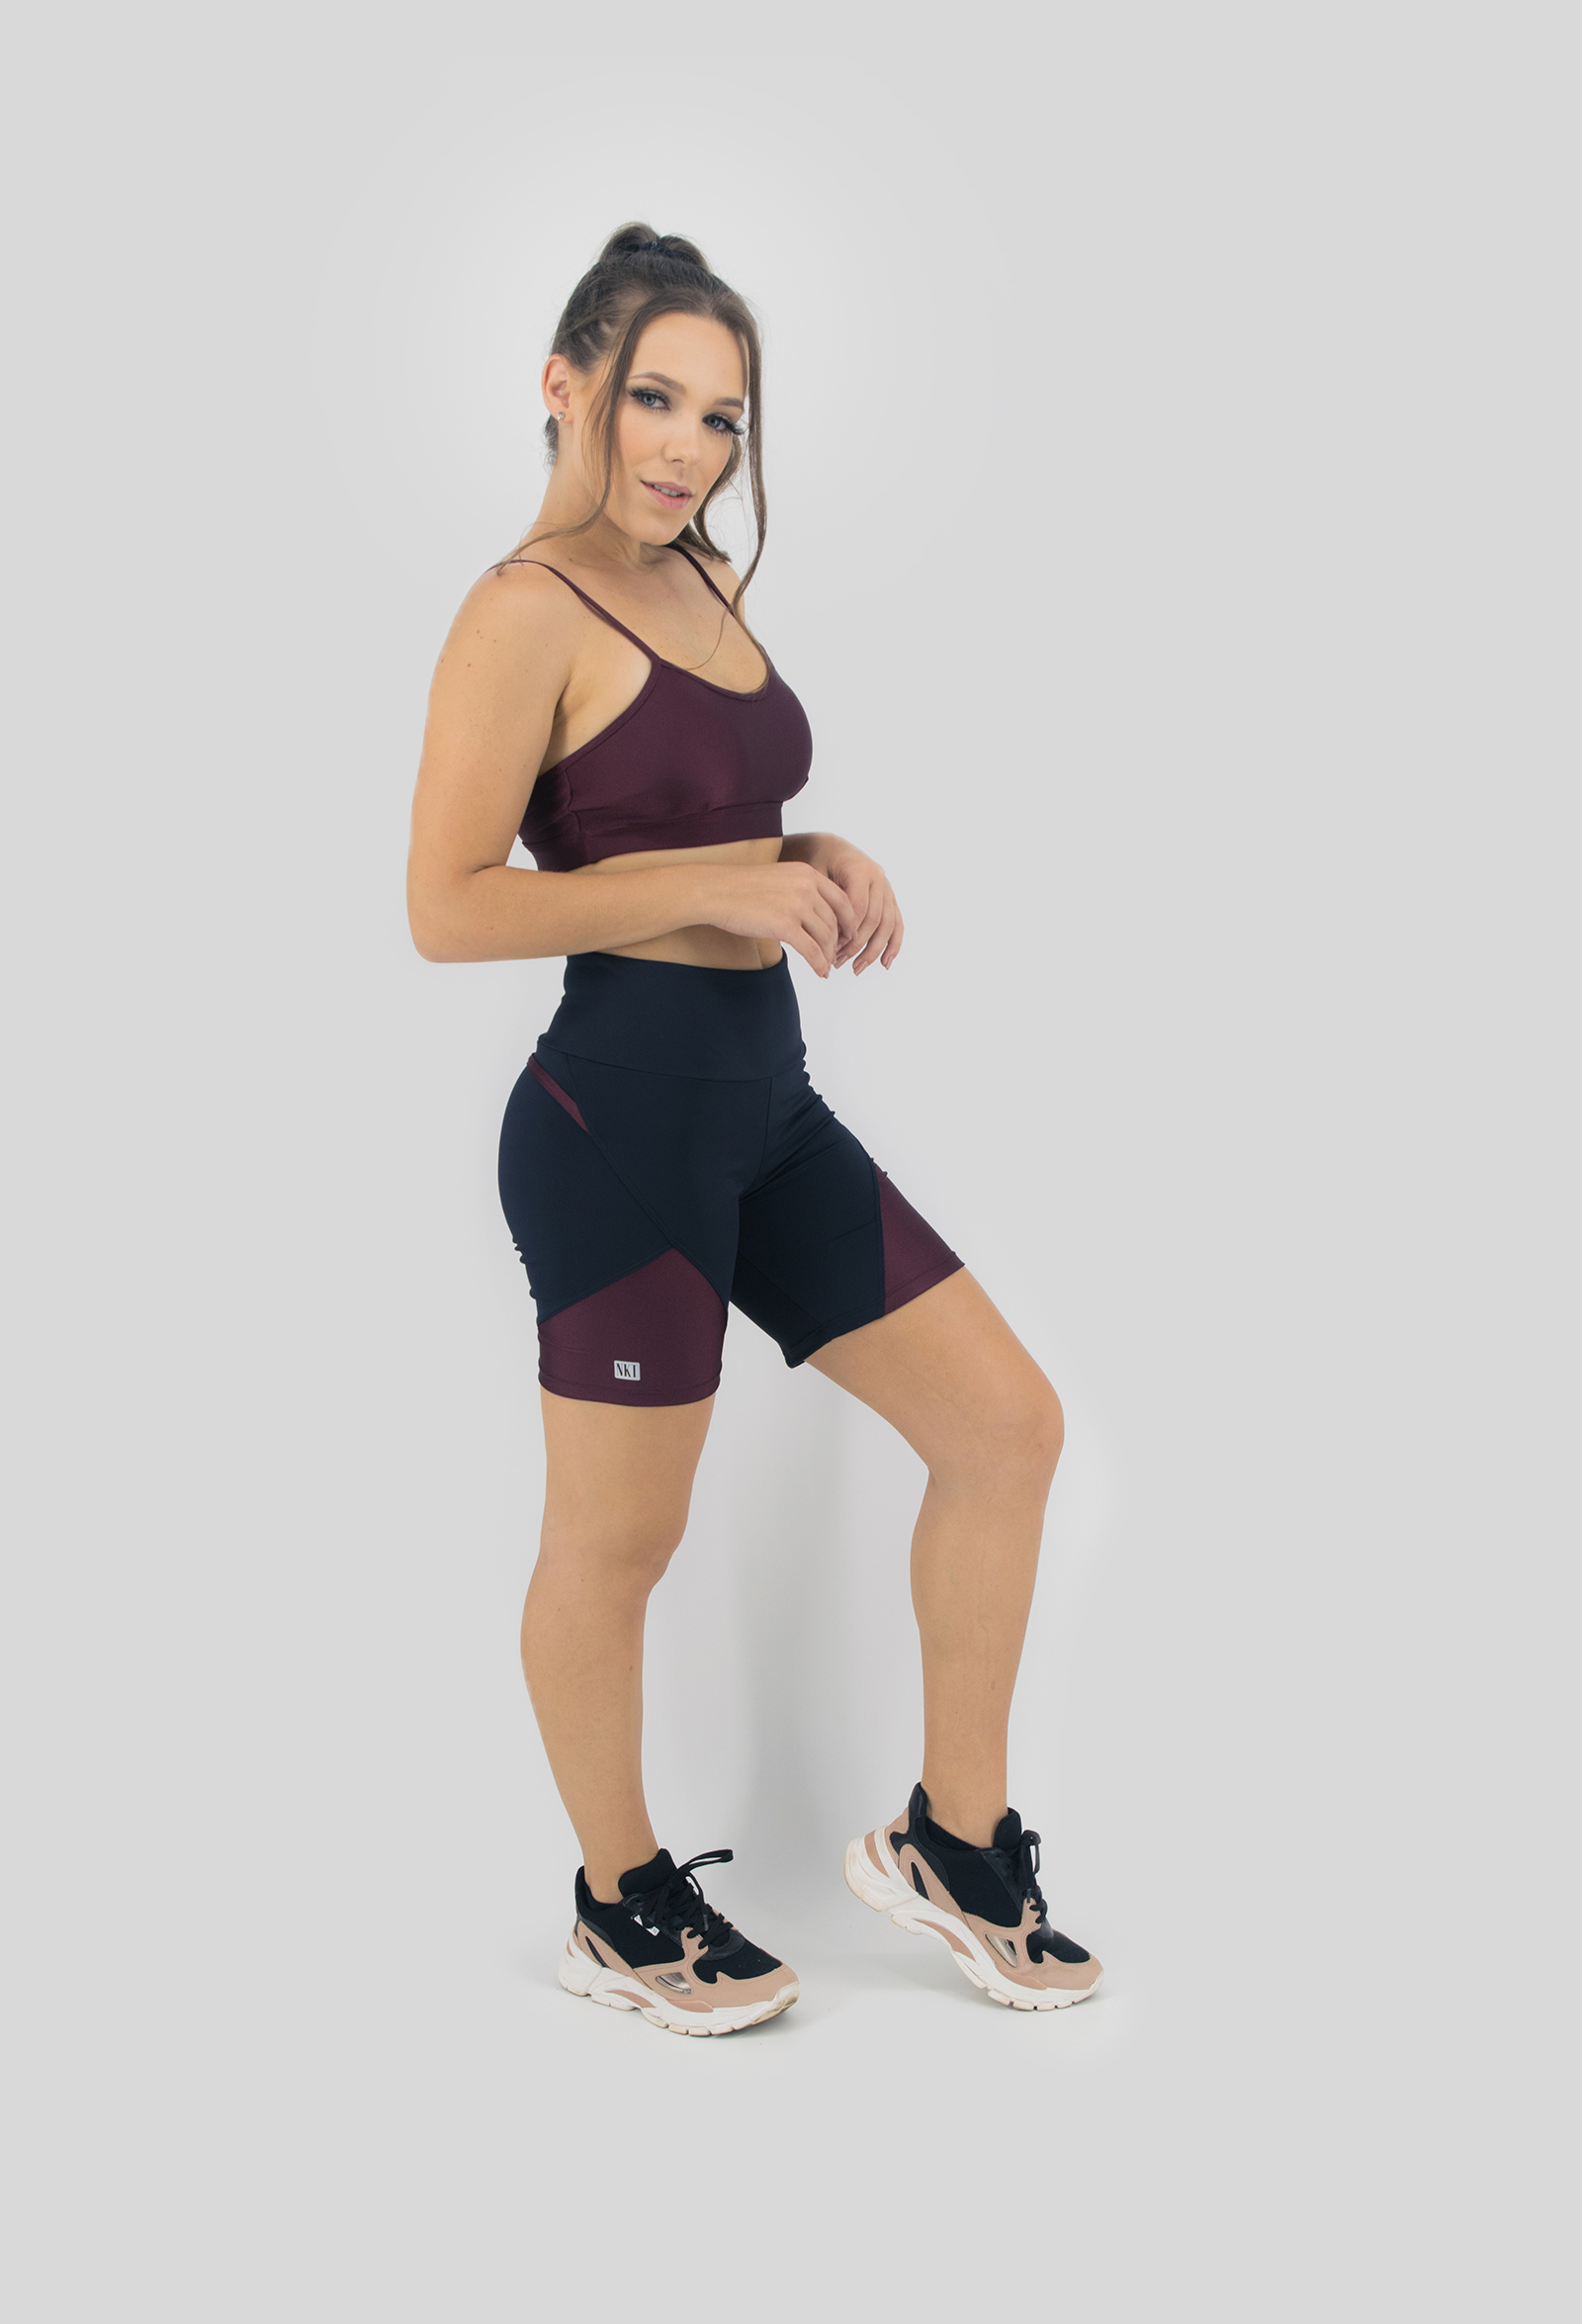 Top Profusion Bordo, Coleção Move Your Body - NKT Fitwear Moda Fitness